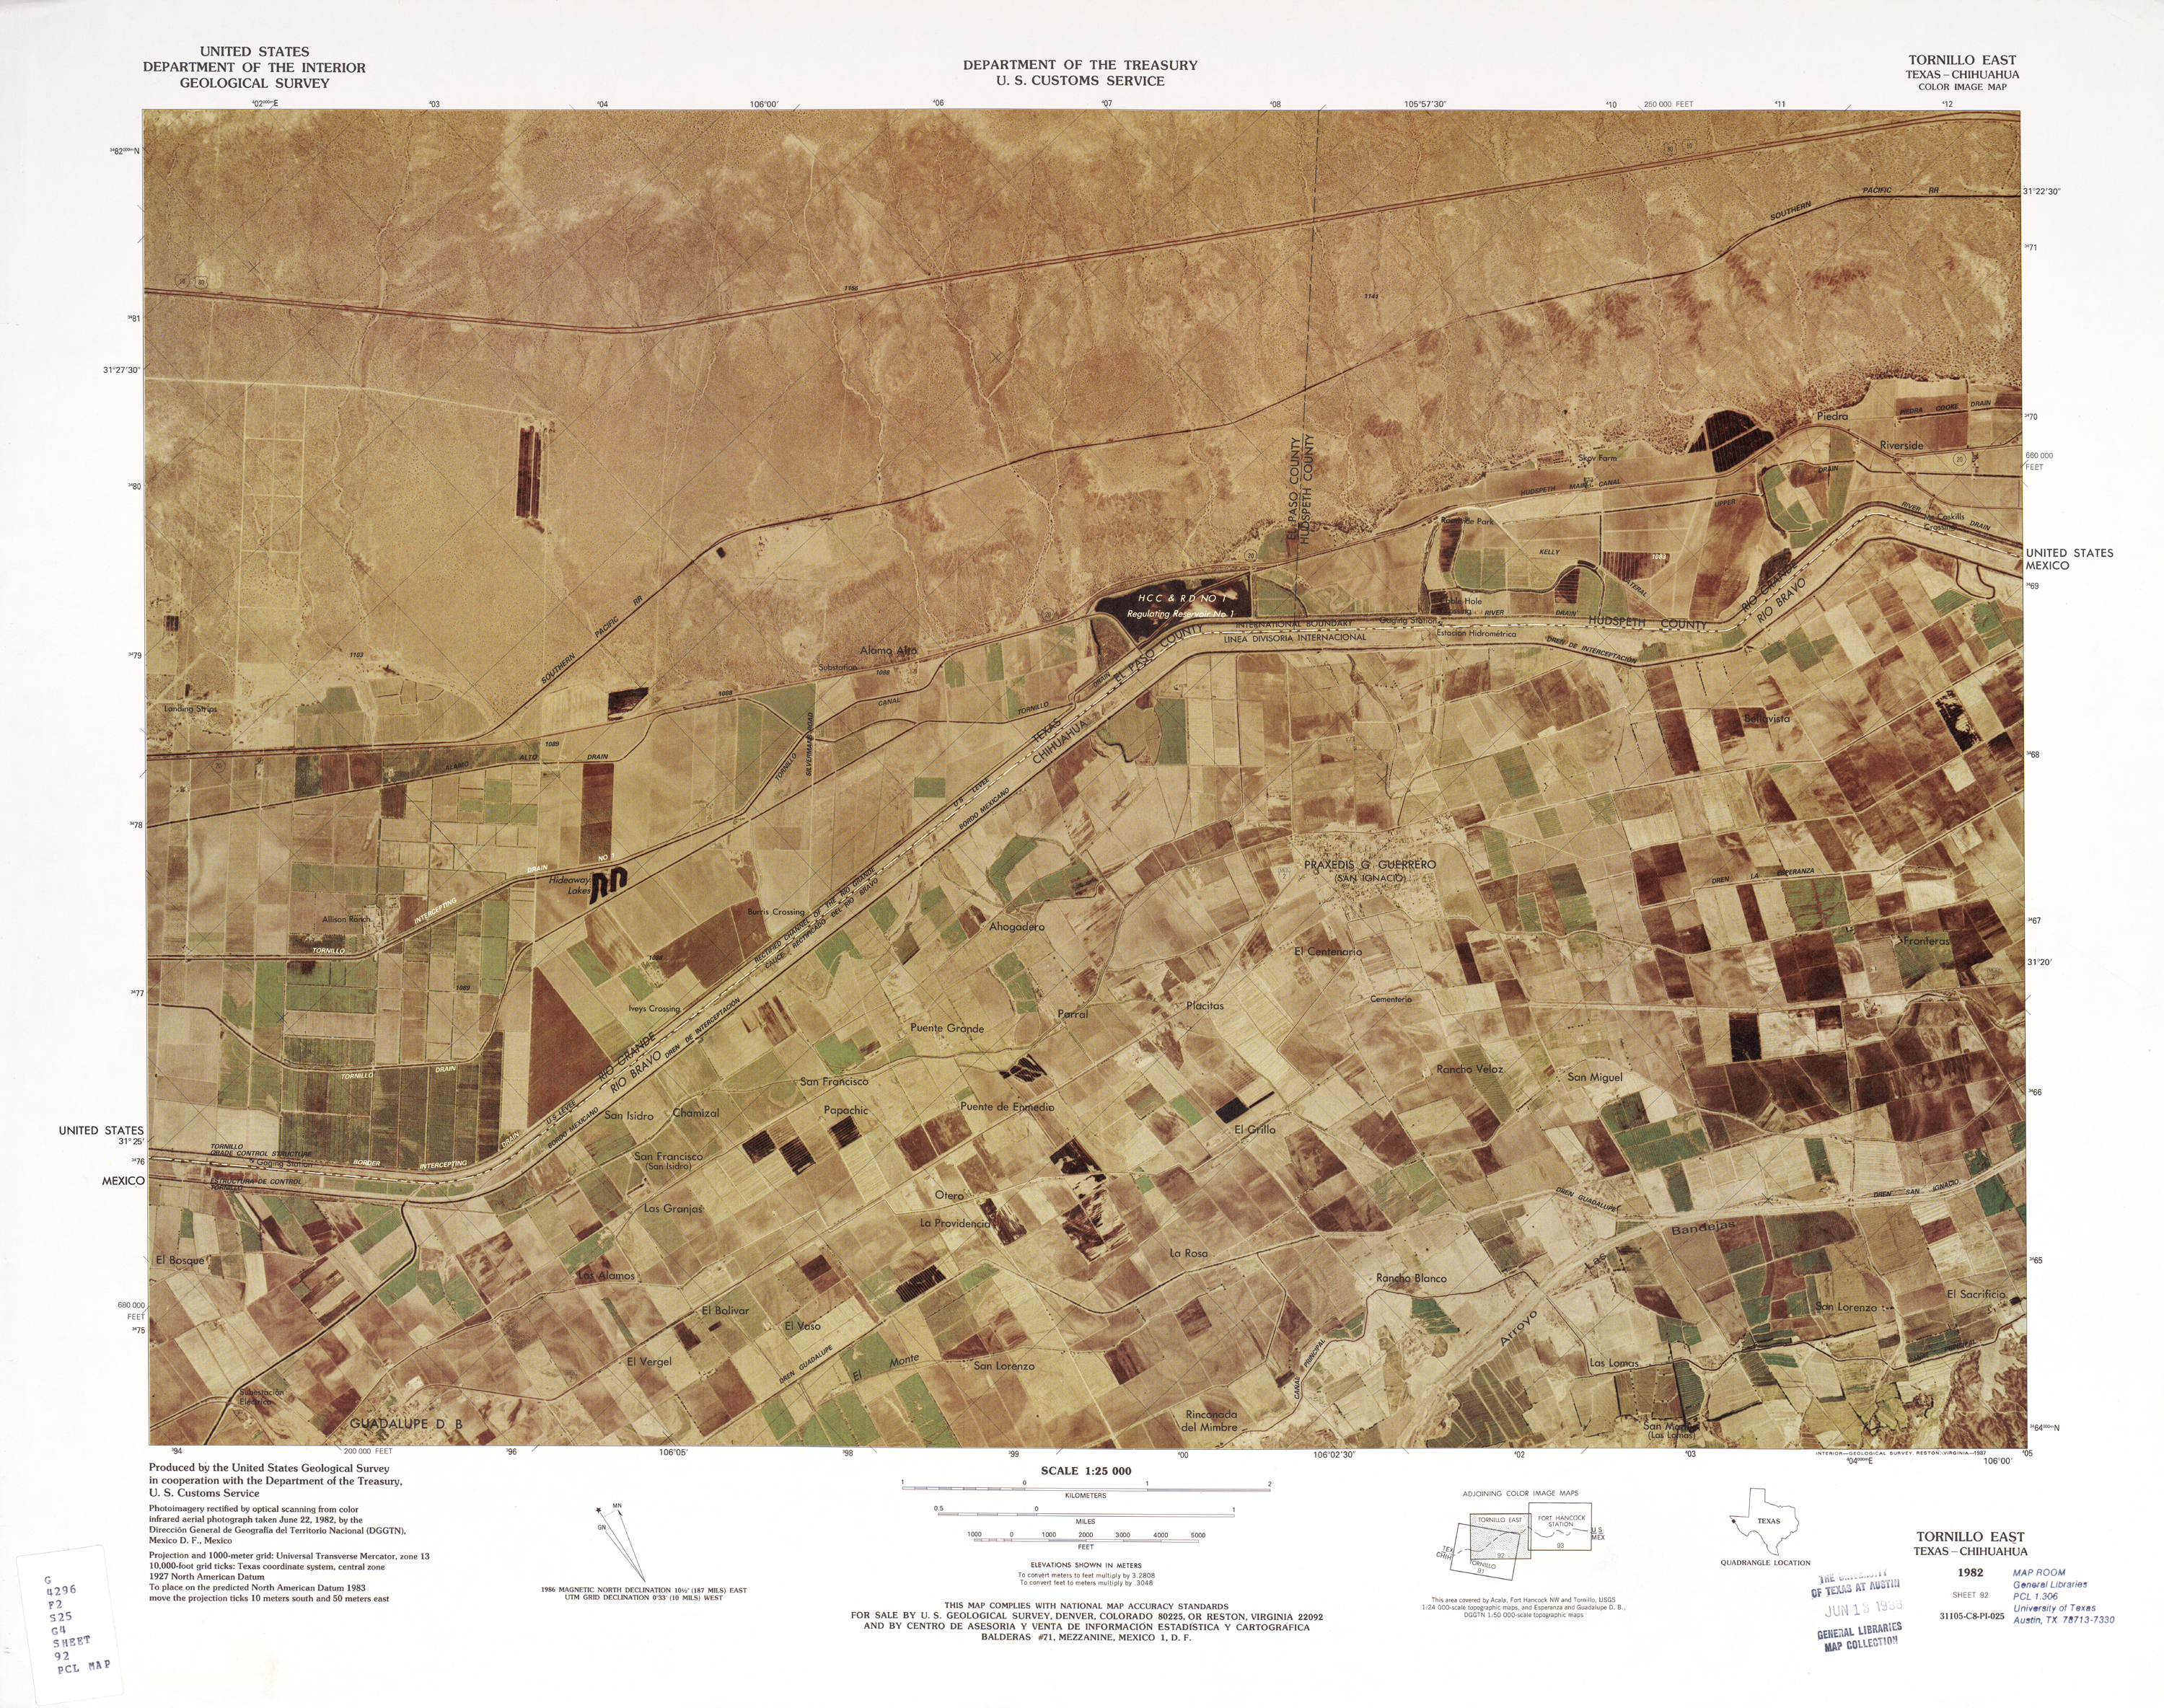 United States-Mexico Border Map, Tornillo East